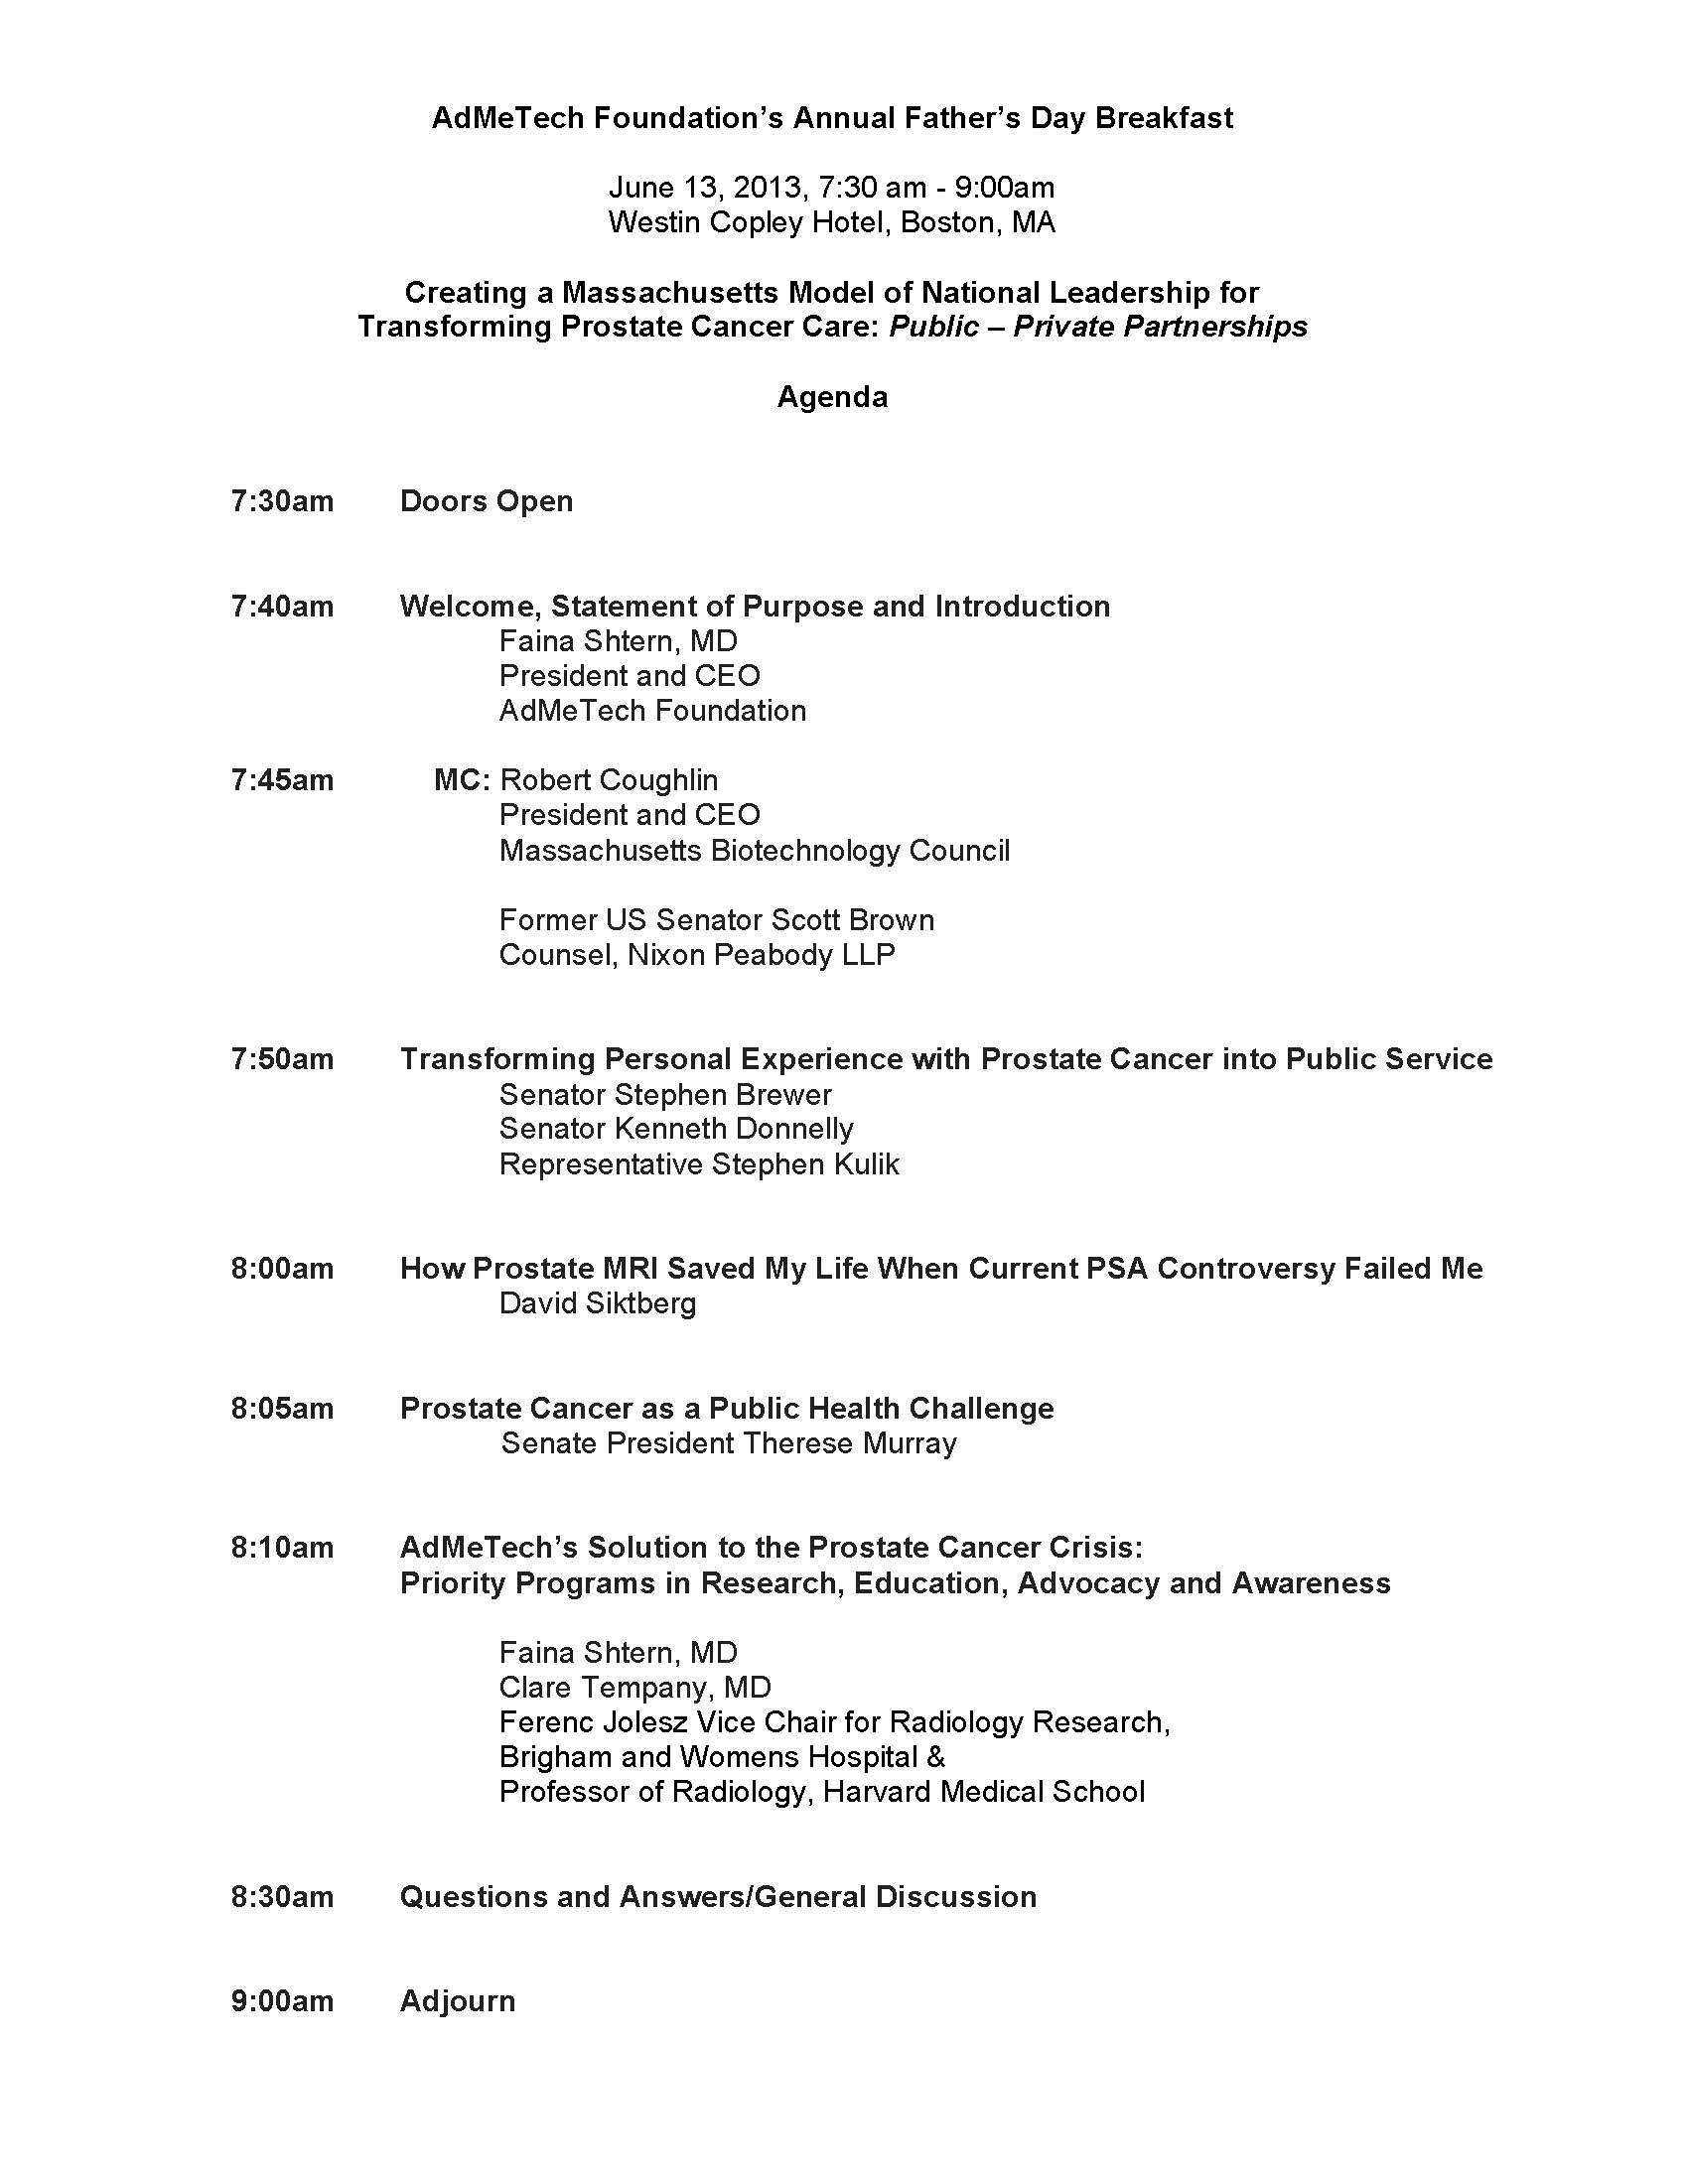 Vip breakfast 2013 agenda admetech massachusetts senate and house for the prostate cancer research program to improve early detection and treatment see 2013 vip breakfast agenda below thecheapjerseys Choice Image